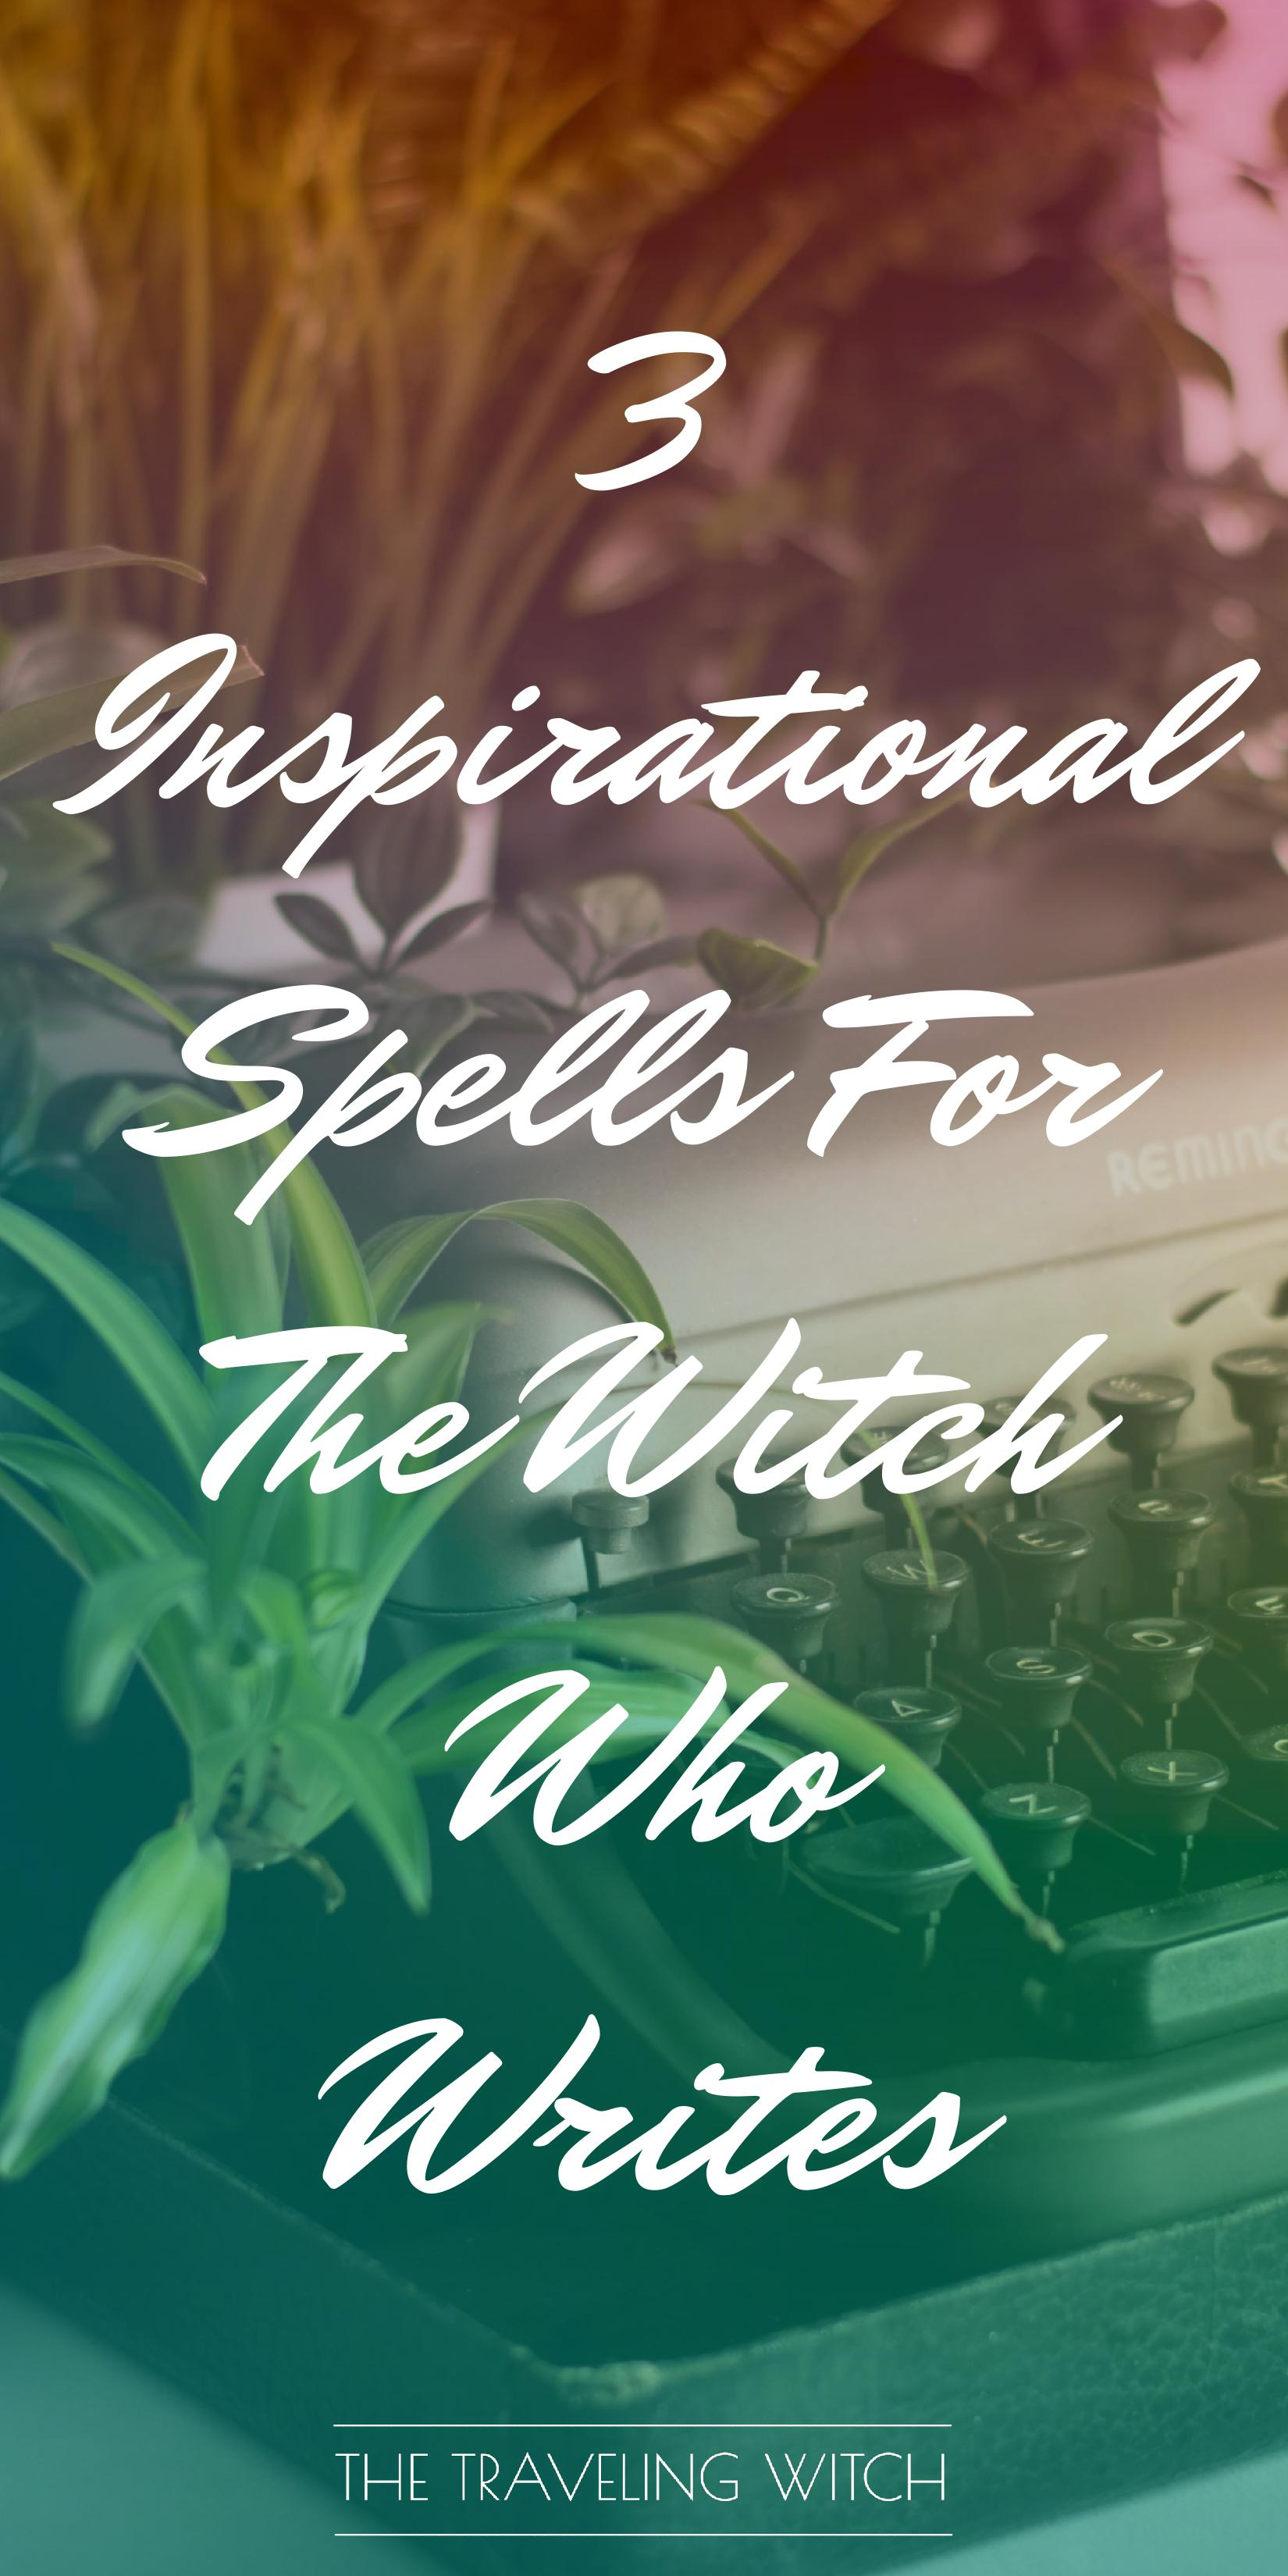 3 Inspirational Spells For The Witch Who Writes // Witchcraft // Magic // The Traveling Witch